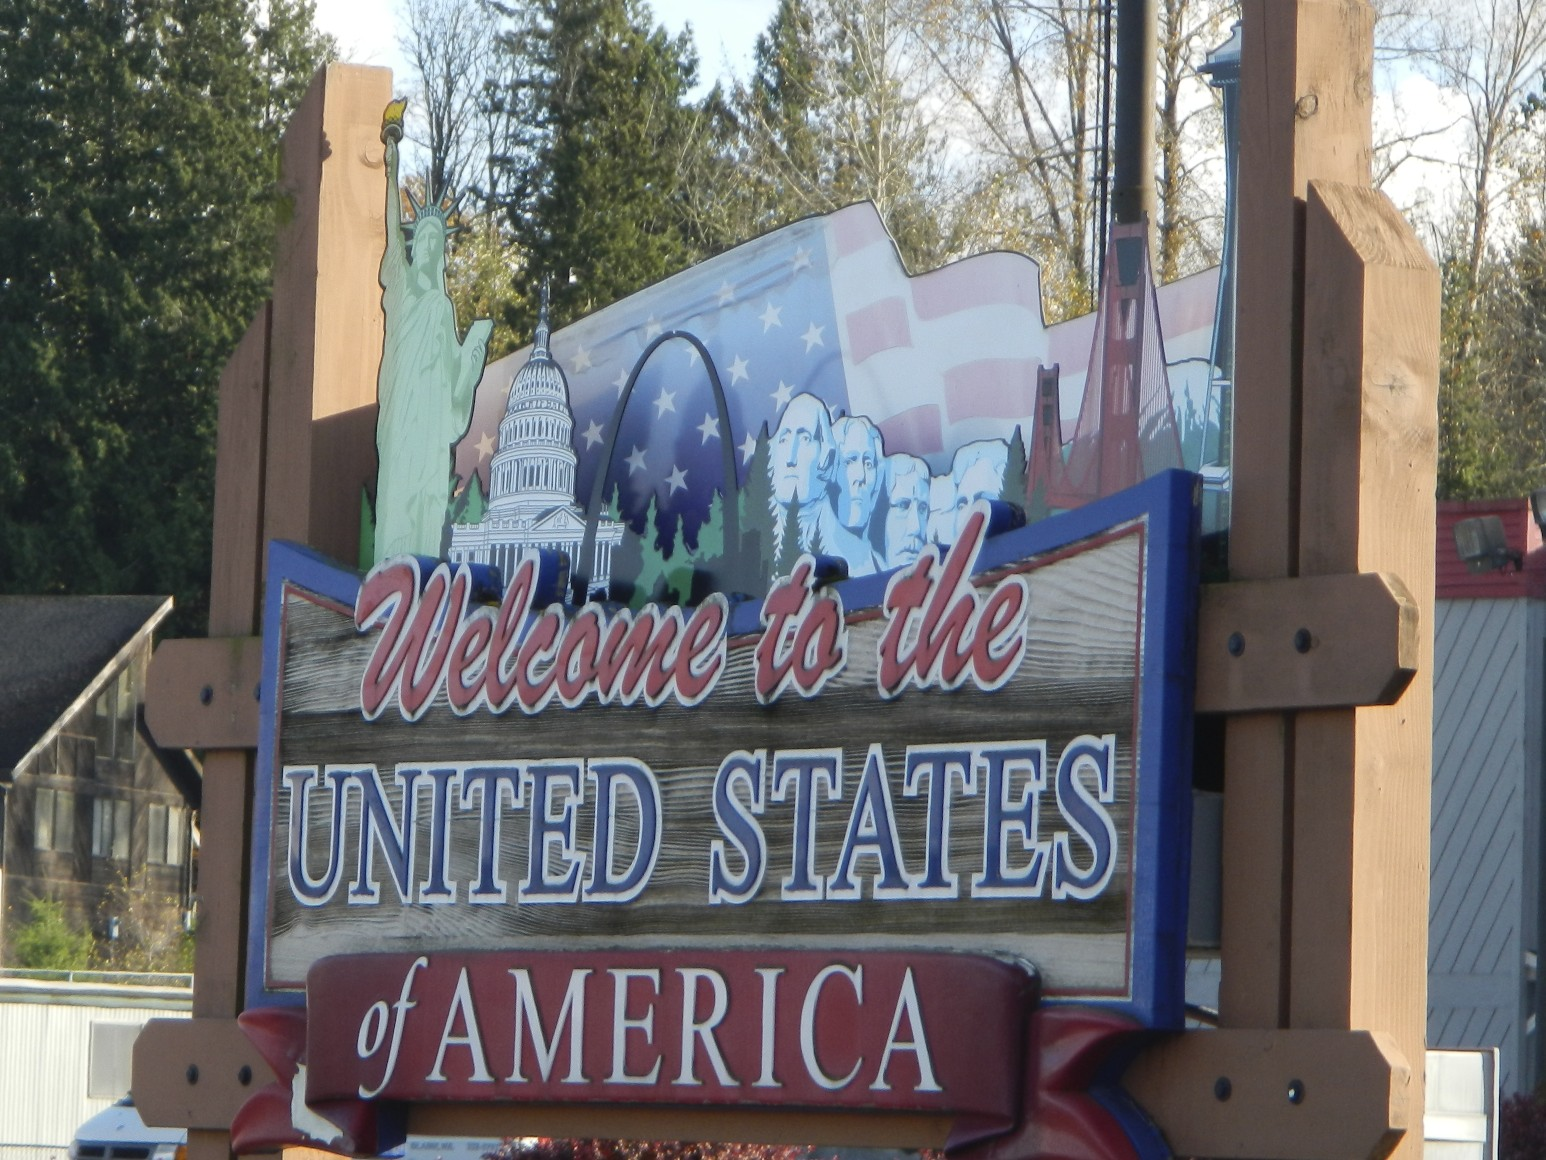 Road Trip From Florida To Alaska Travel Cross Country Tips - Is florida part of the united states